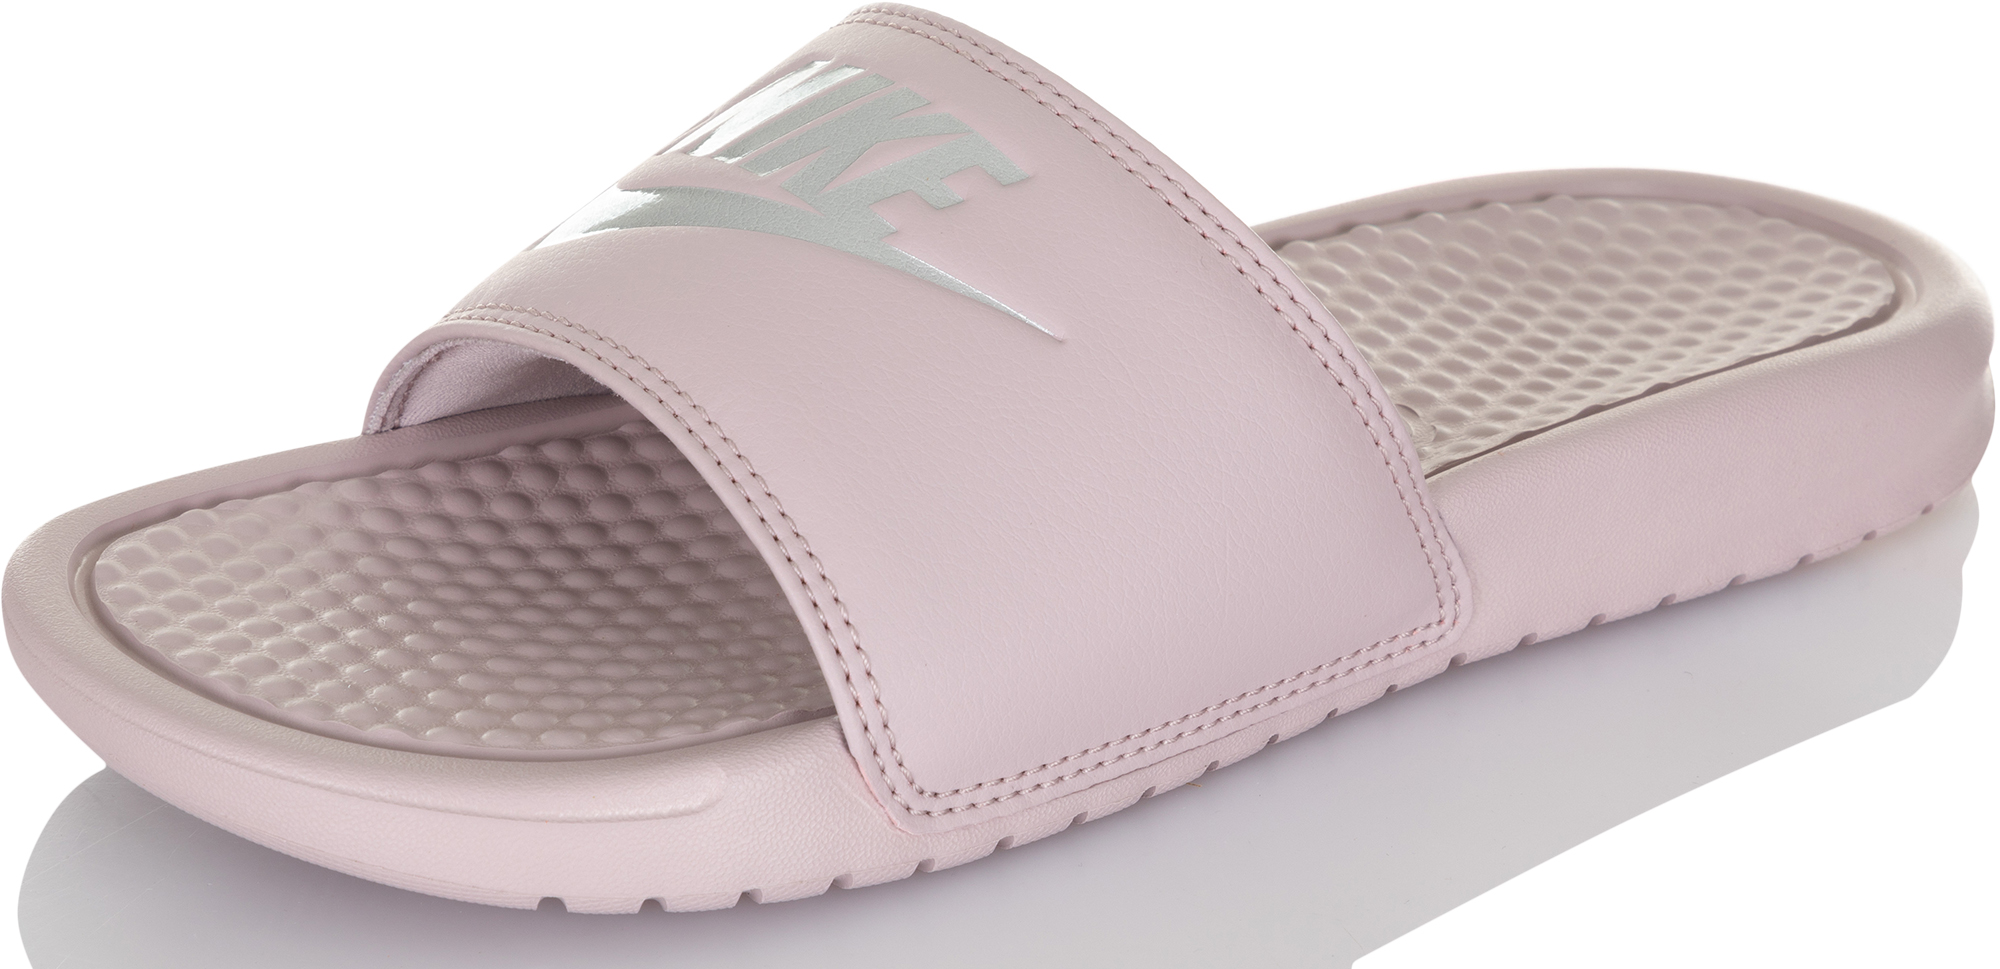 Nike Шлепанцы женские Nike Benassi Just Do It, размер 39,5